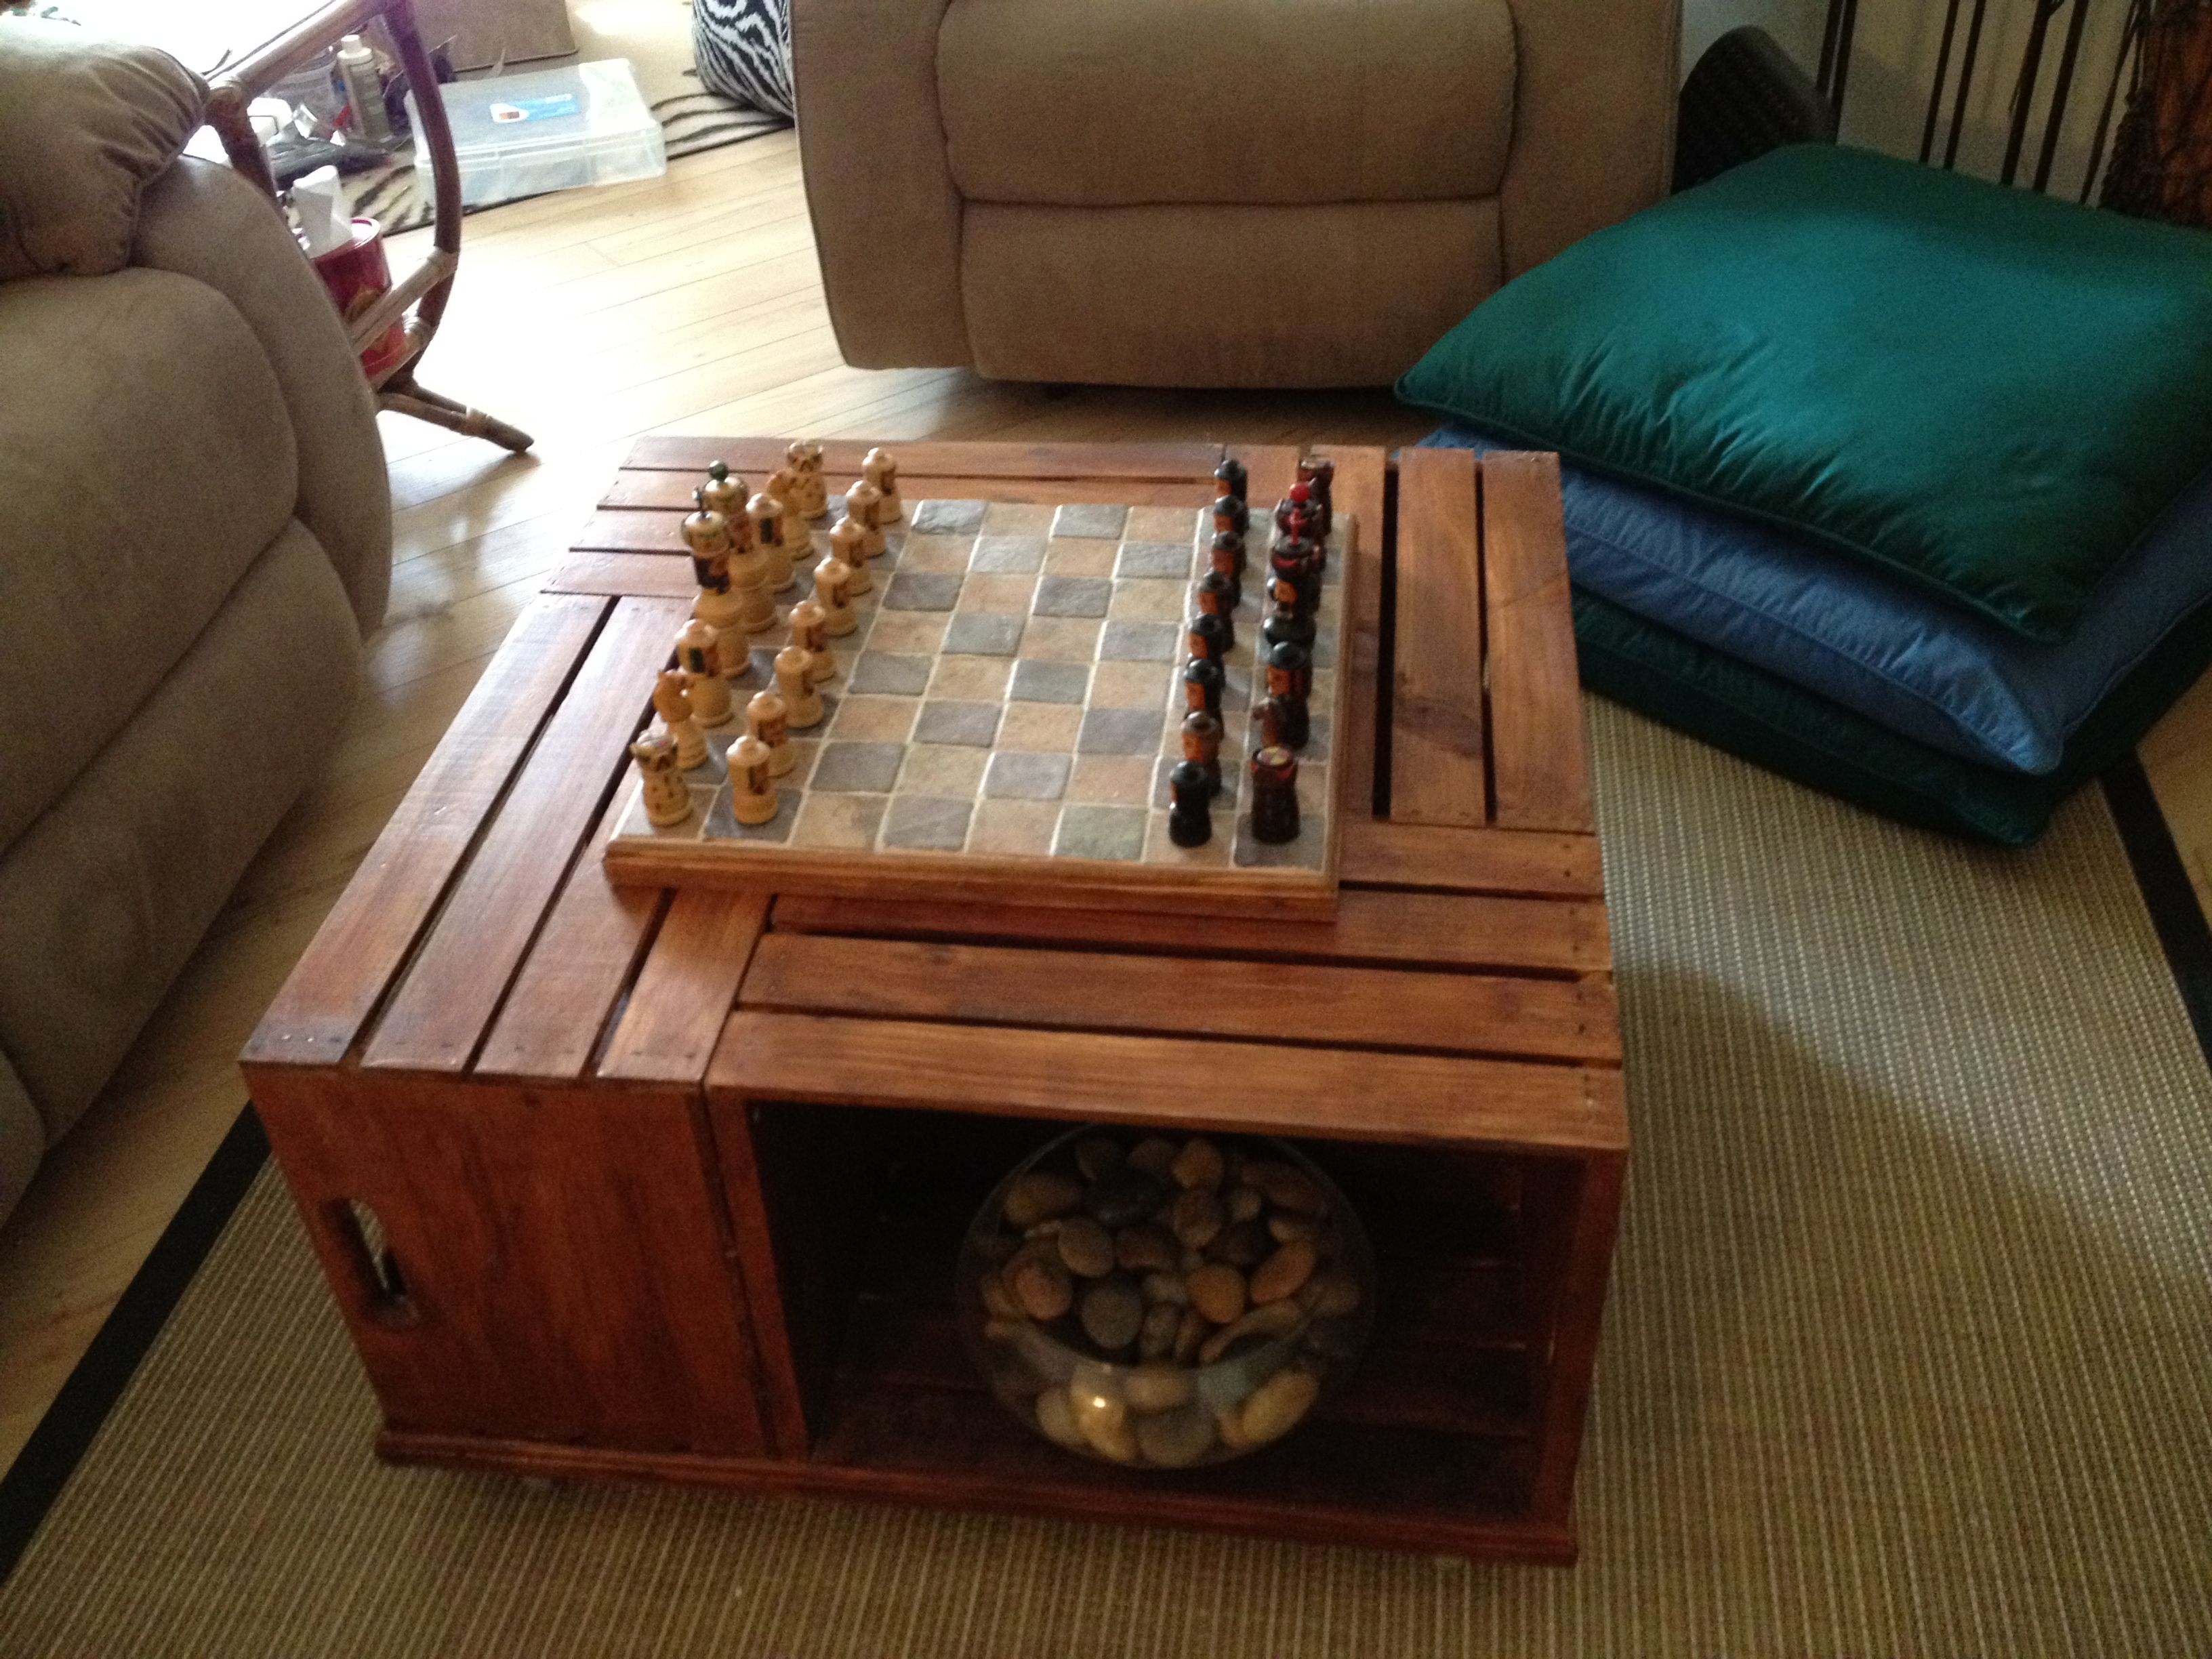 Inspired By Another Pin My Crate Table Has A Diy Chess Board Set Over The Hole And Held In Place 3 Small Dowels